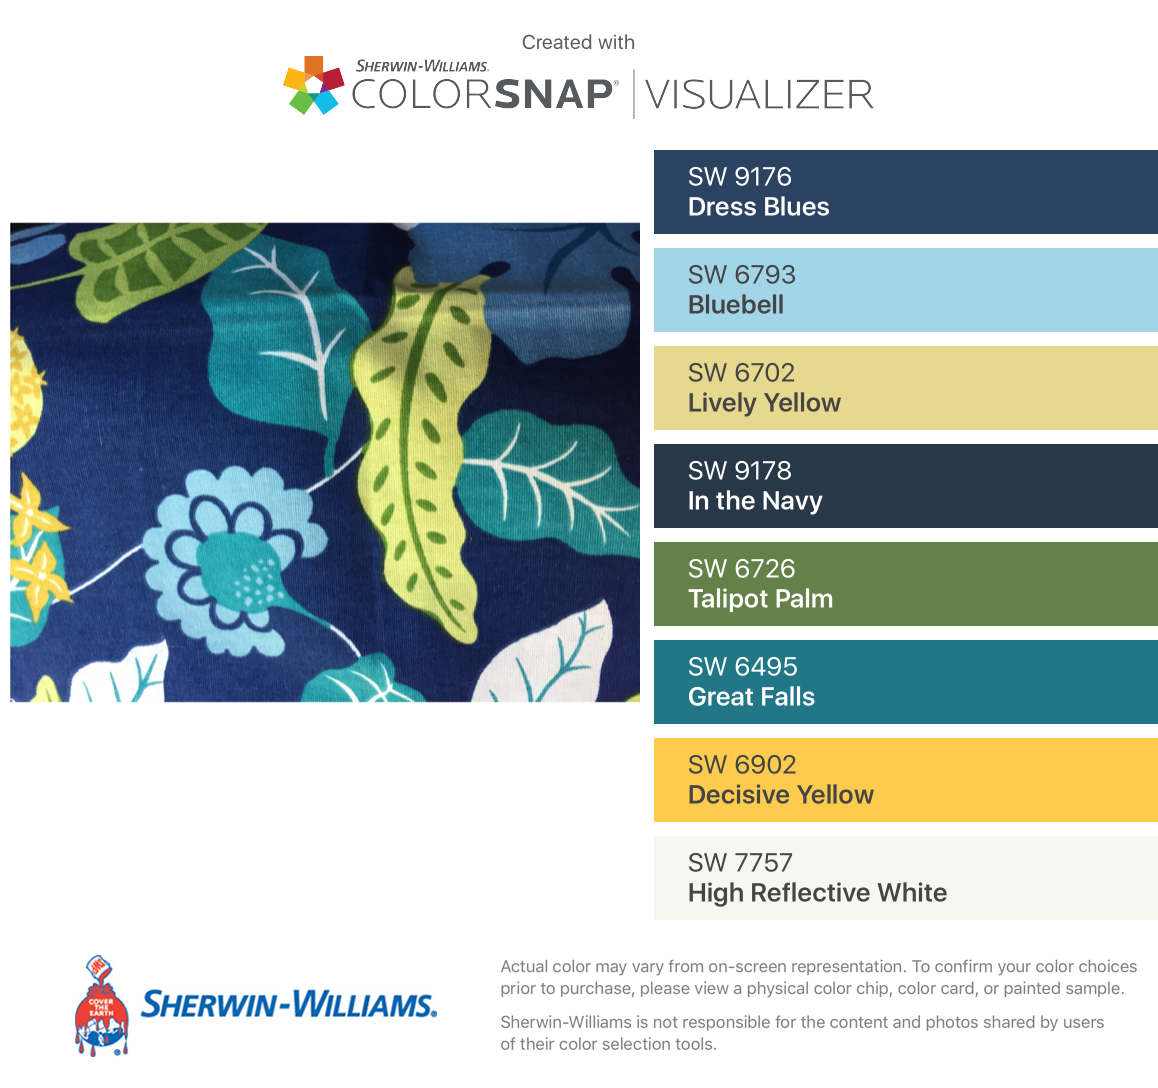 I Found These Colors With Colorsnap Visualizer For Iphone By Sherwin Williams Dress Blues Sw 9176 Bluebell Sherwin Williams Navy Interior Remodel Bedroom [ 1088 x 1158 Pixel ]